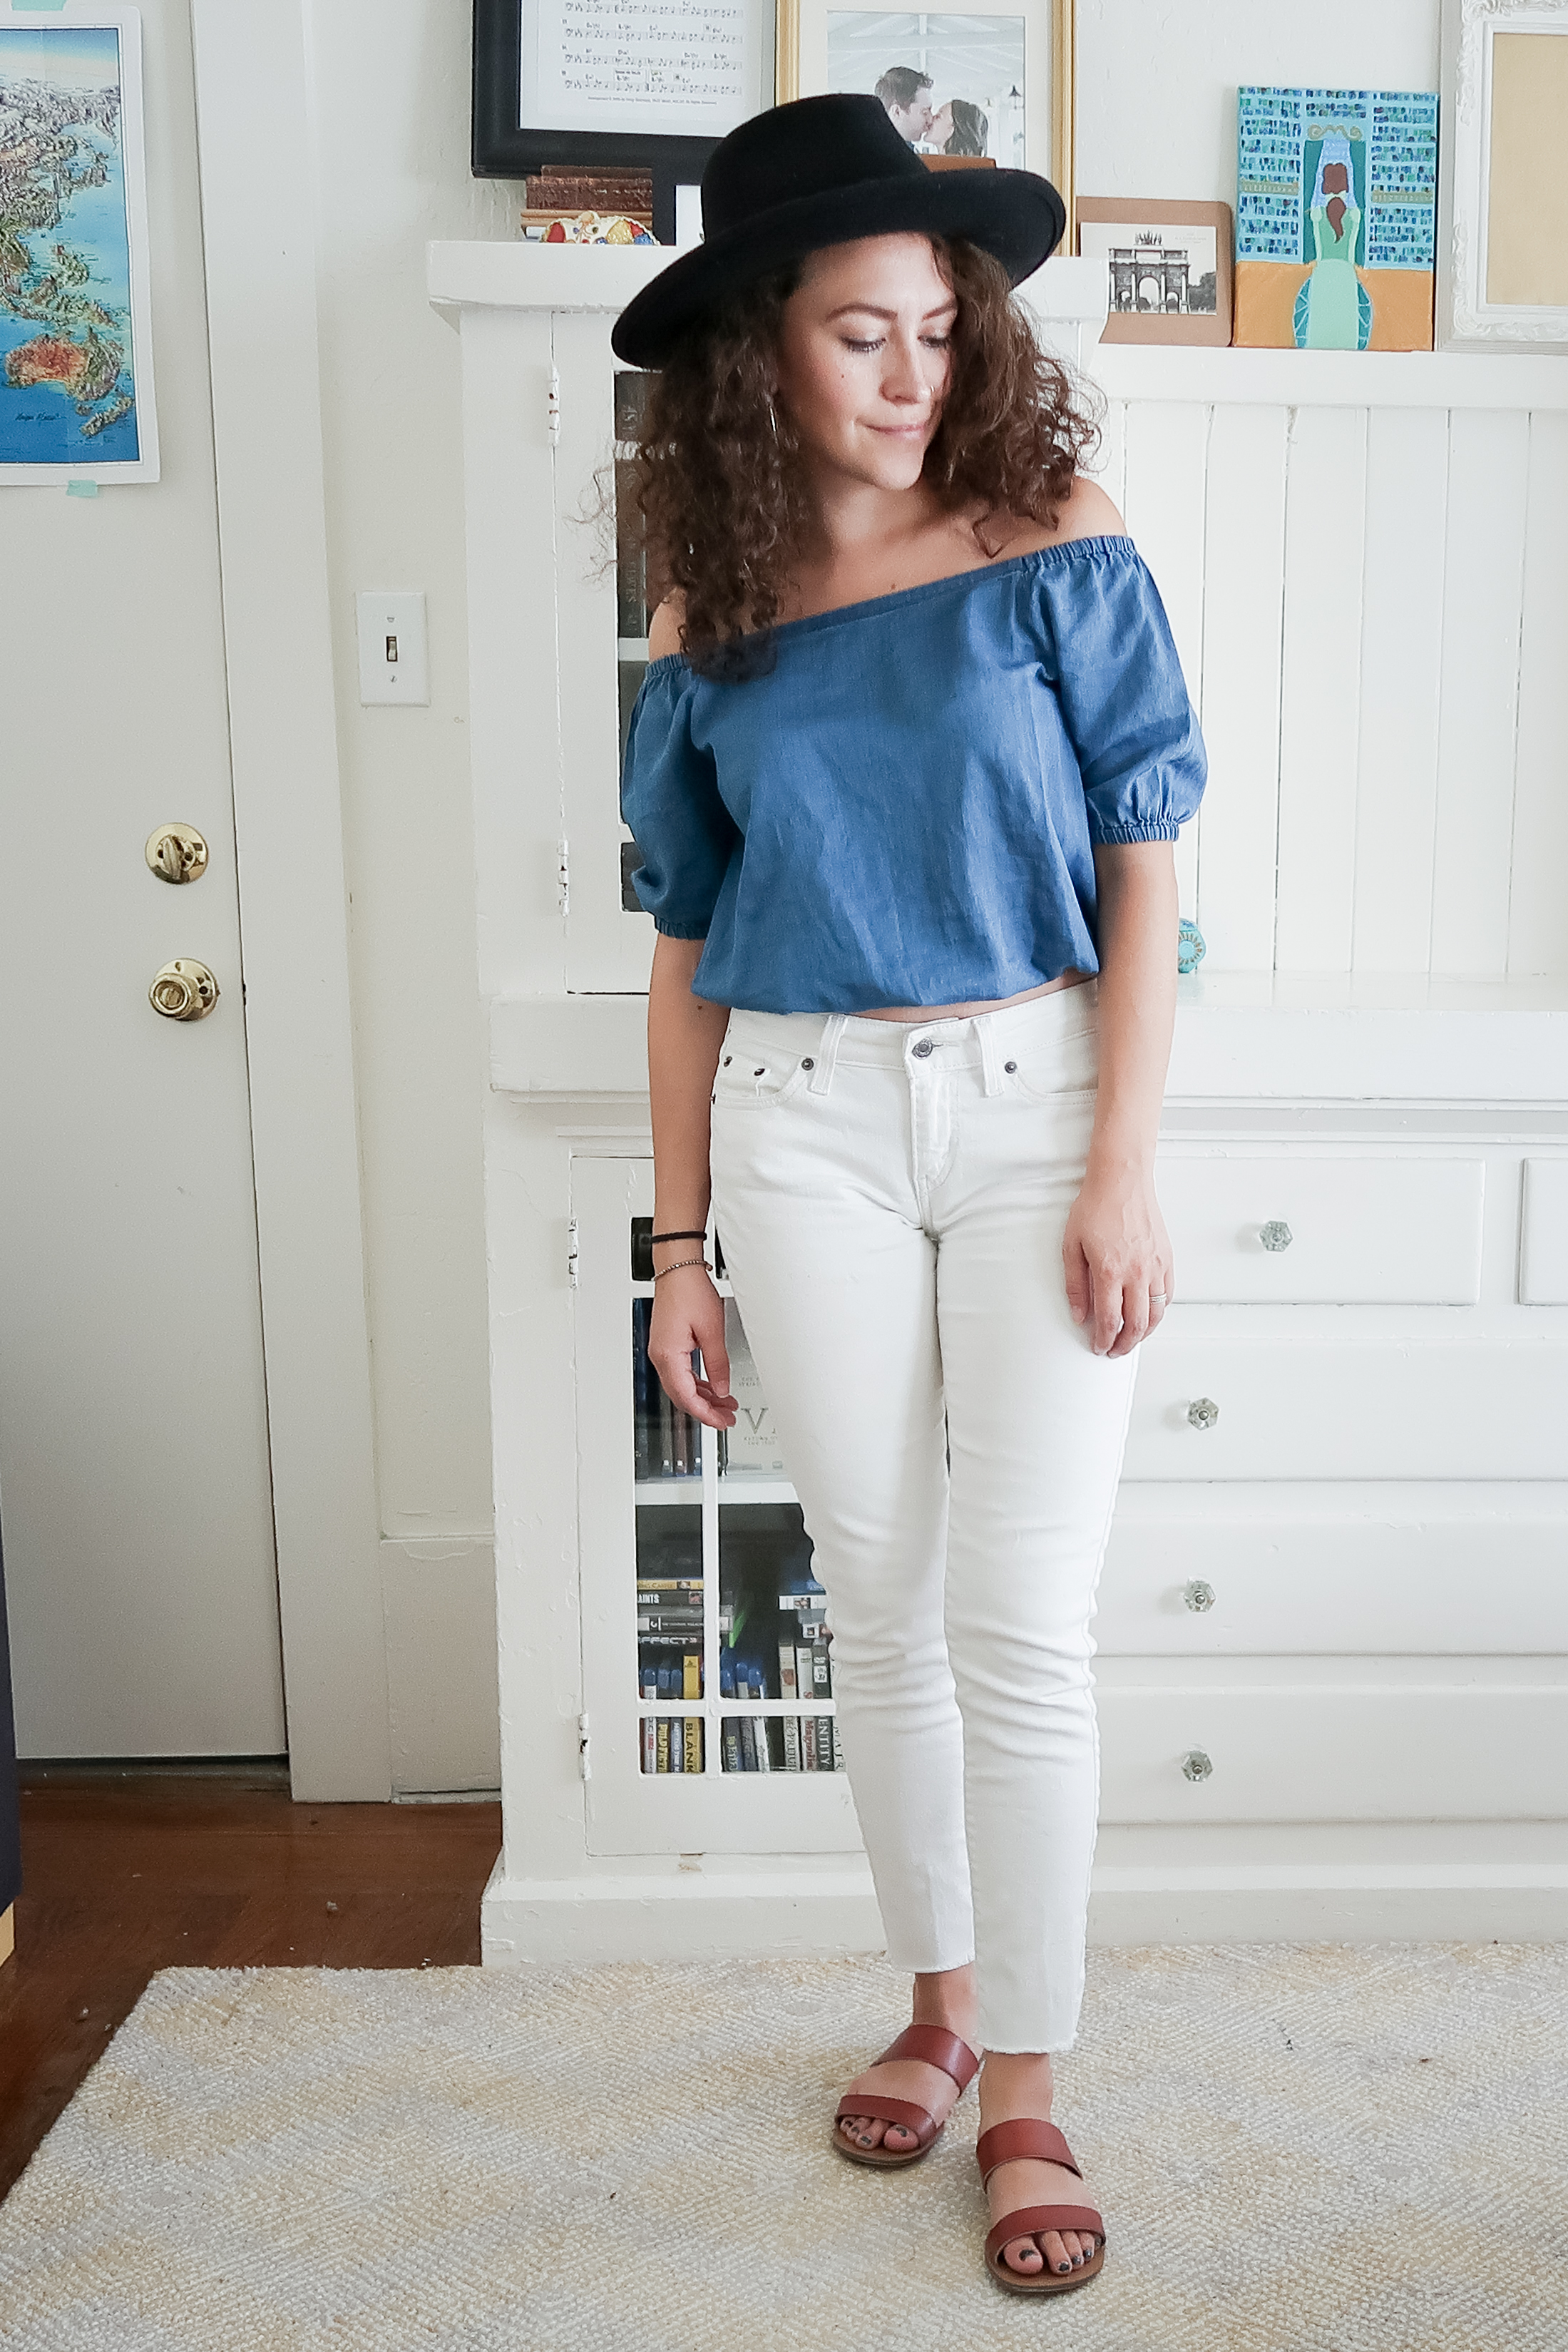 10 pieces, 10 outfits -- white levis skinny jeans worn with a bright indigo off the shoulder top from madewell, brown leather slide sandals and a black hat